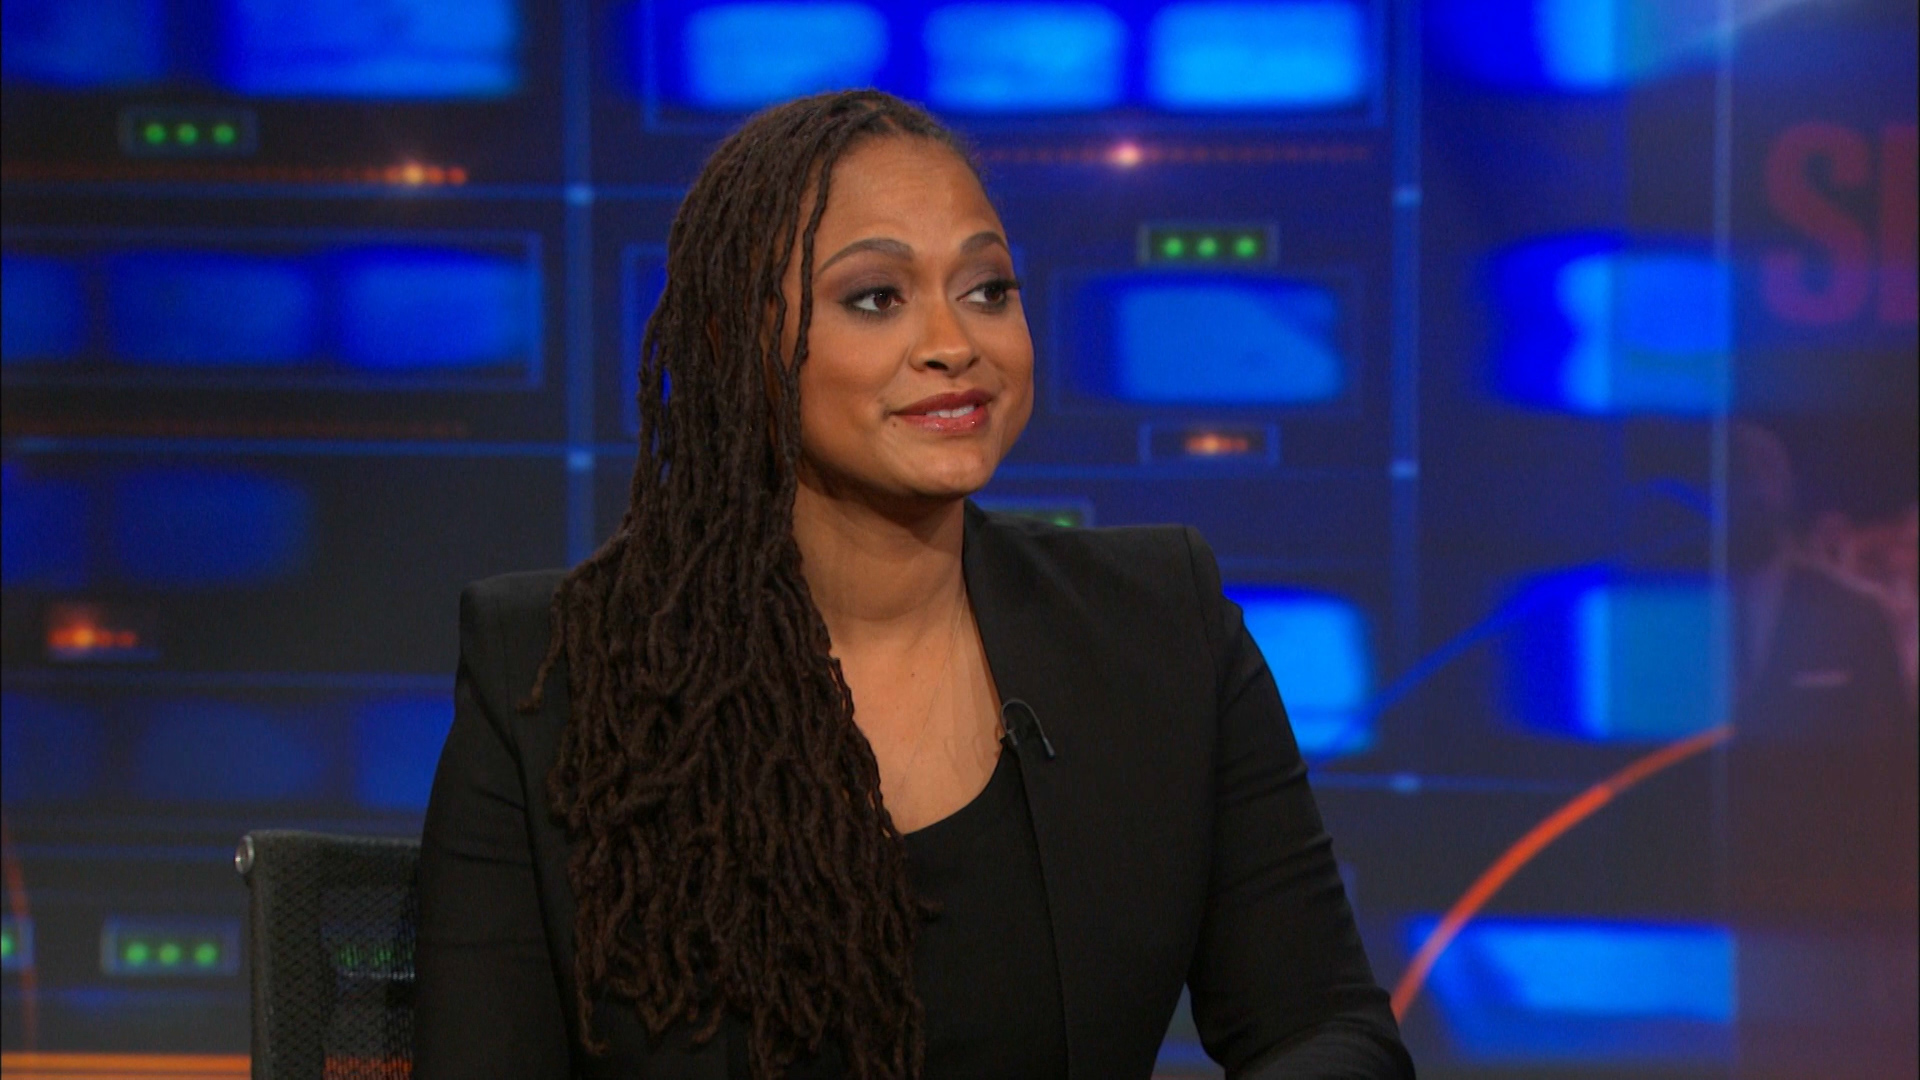 Ava DuVernay Shares First Photos, Wraps Filming